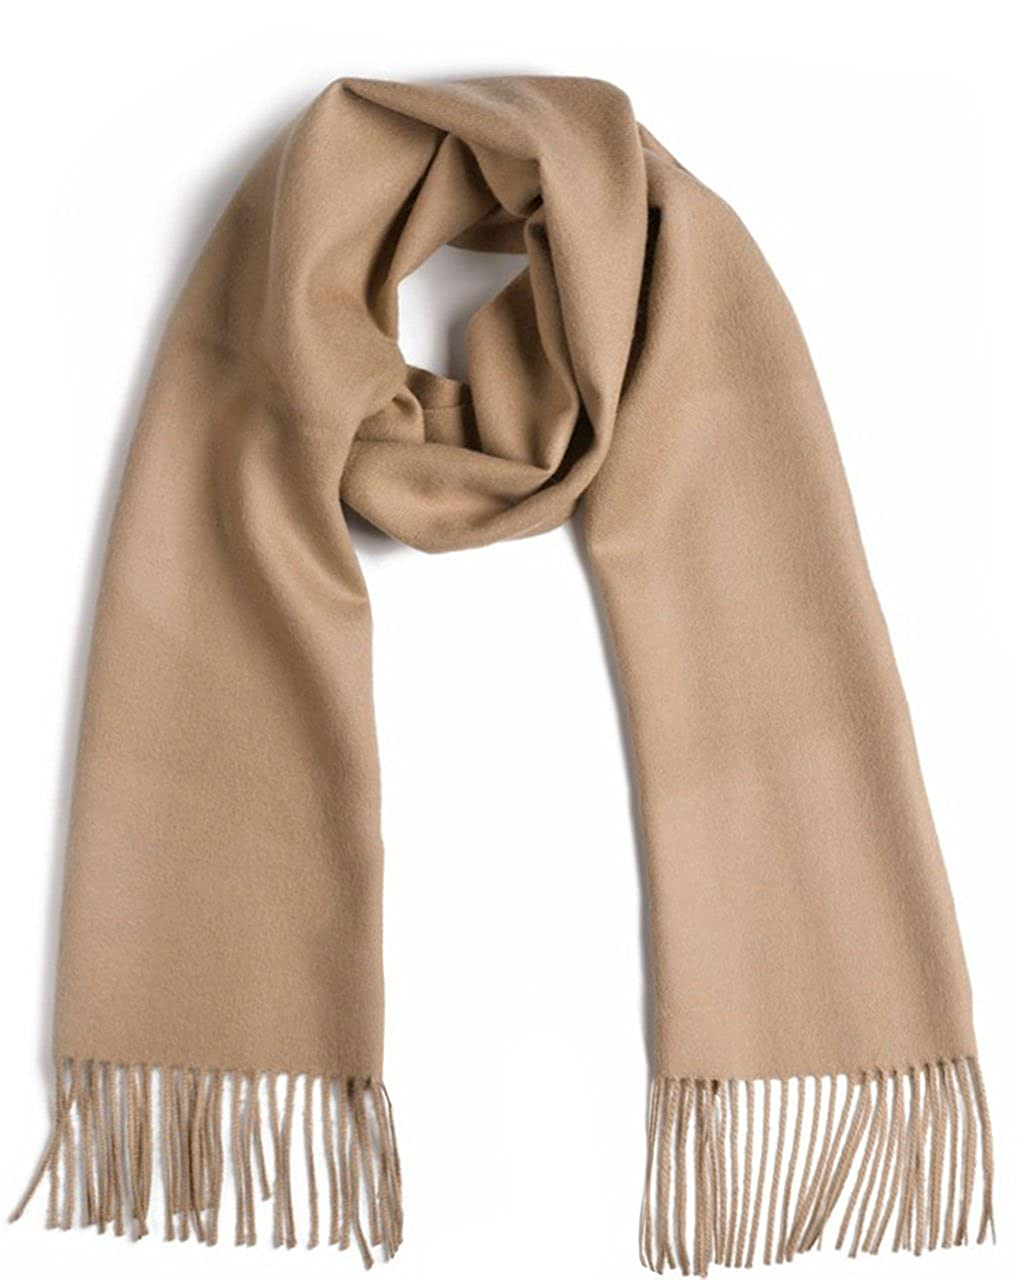 Luxurious 100/% Premium Baby Alpaca Scarf Ultimate Softness for Men and Women